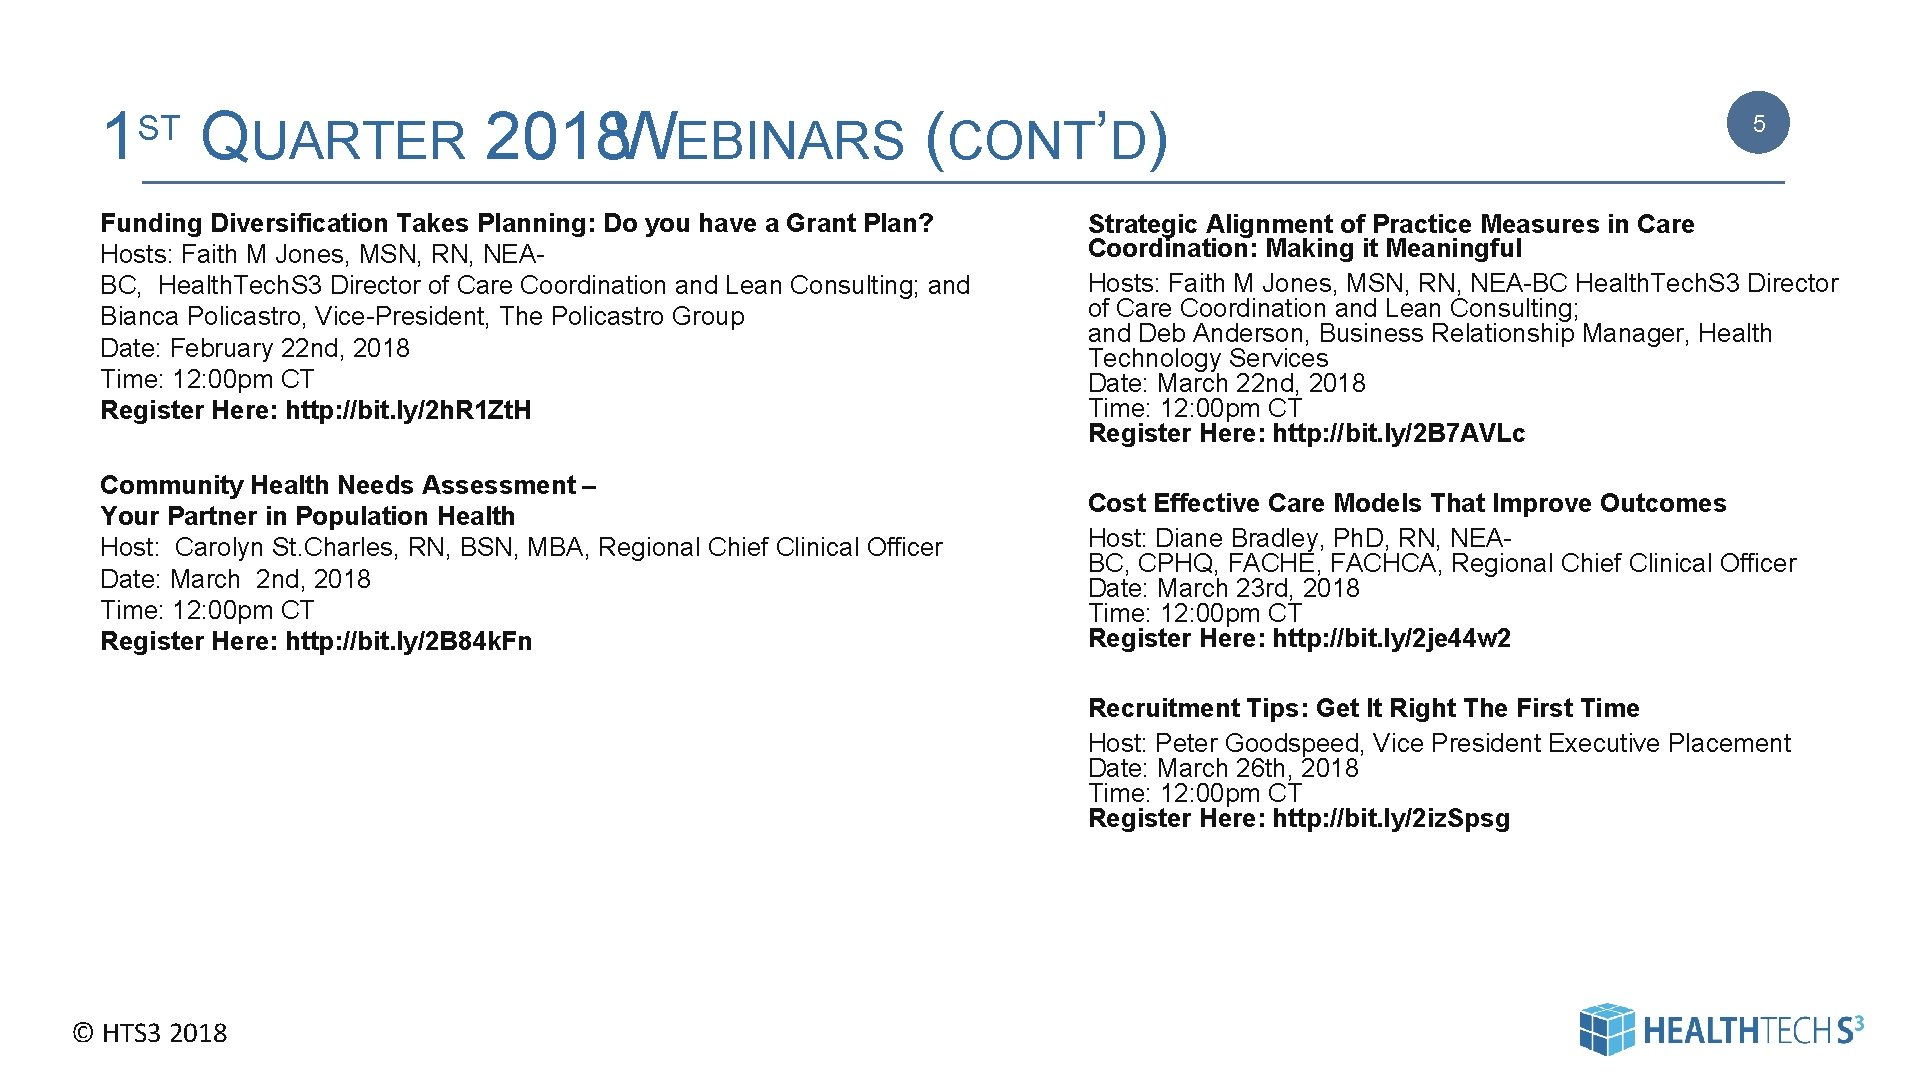 1 QUARTER 2018 WEBINARS (CONT'D) ST 5 Funding Diversification Takes Planning: Do you have